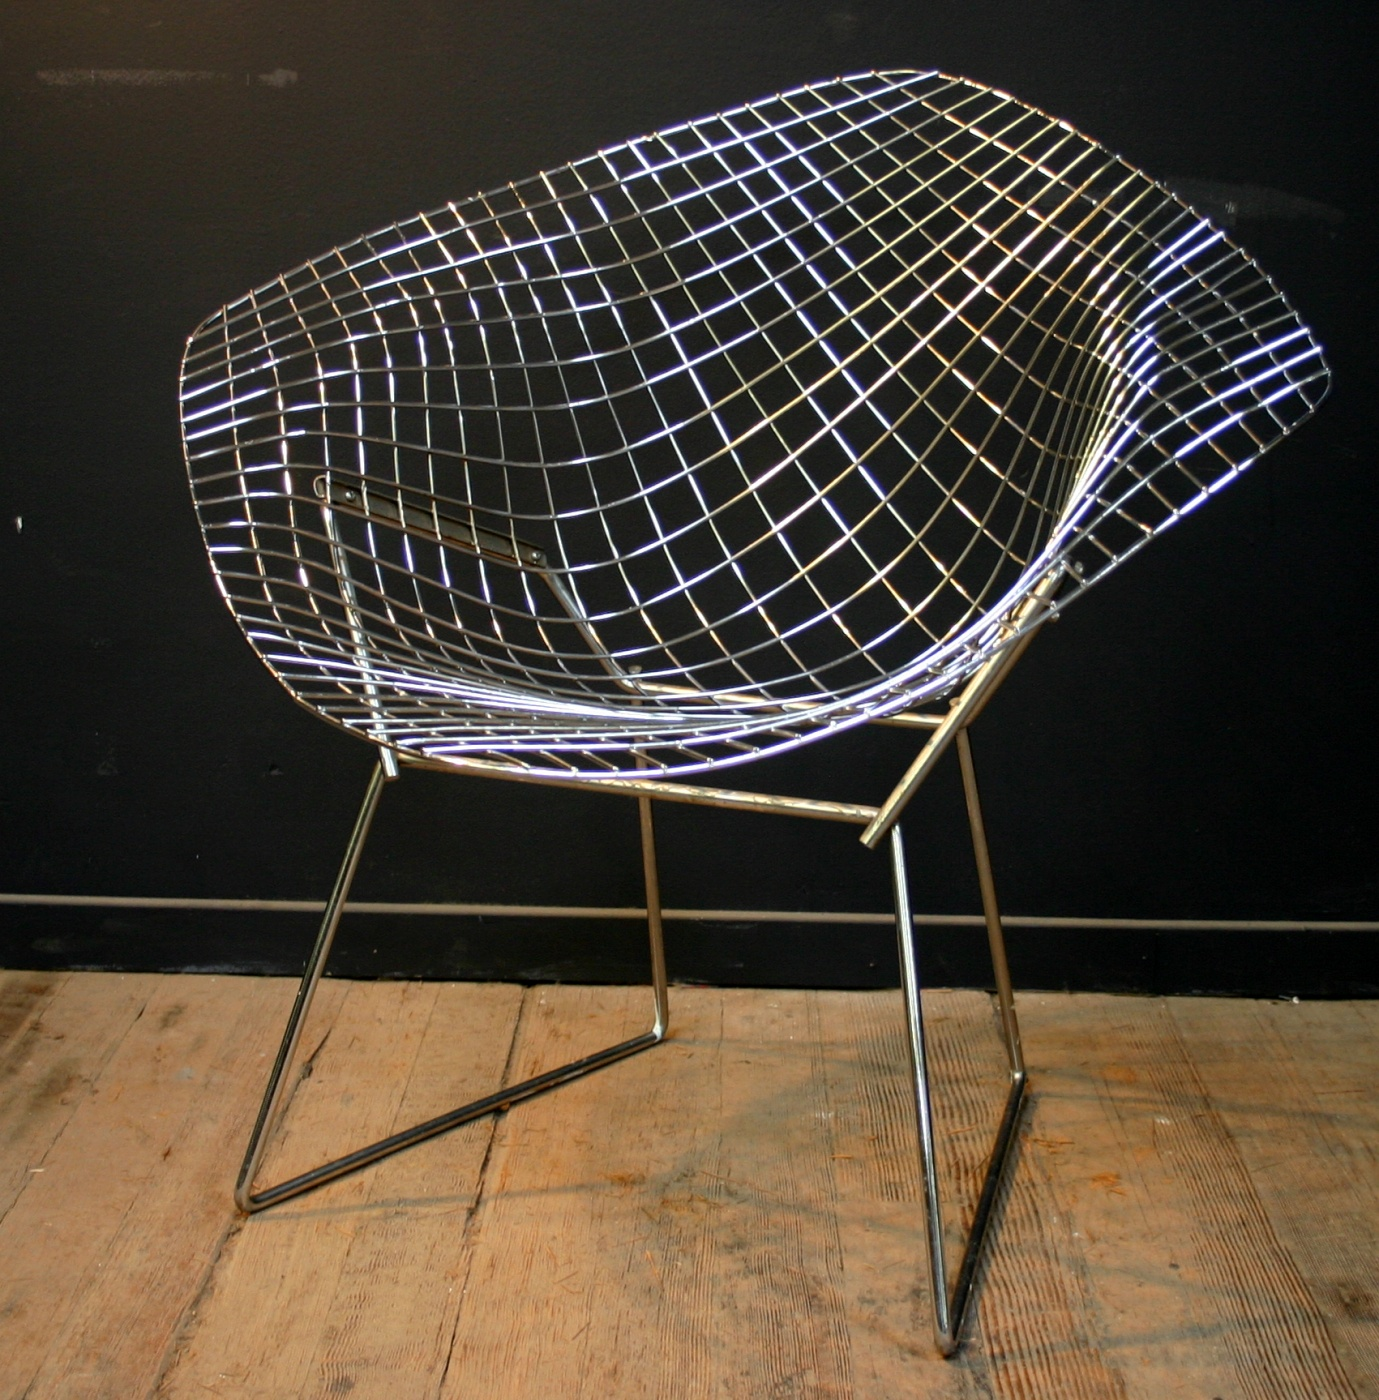 q how do you turn a harry bertoia diamond chair into a lunar landing module vintage. Black Bedroom Furniture Sets. Home Design Ideas